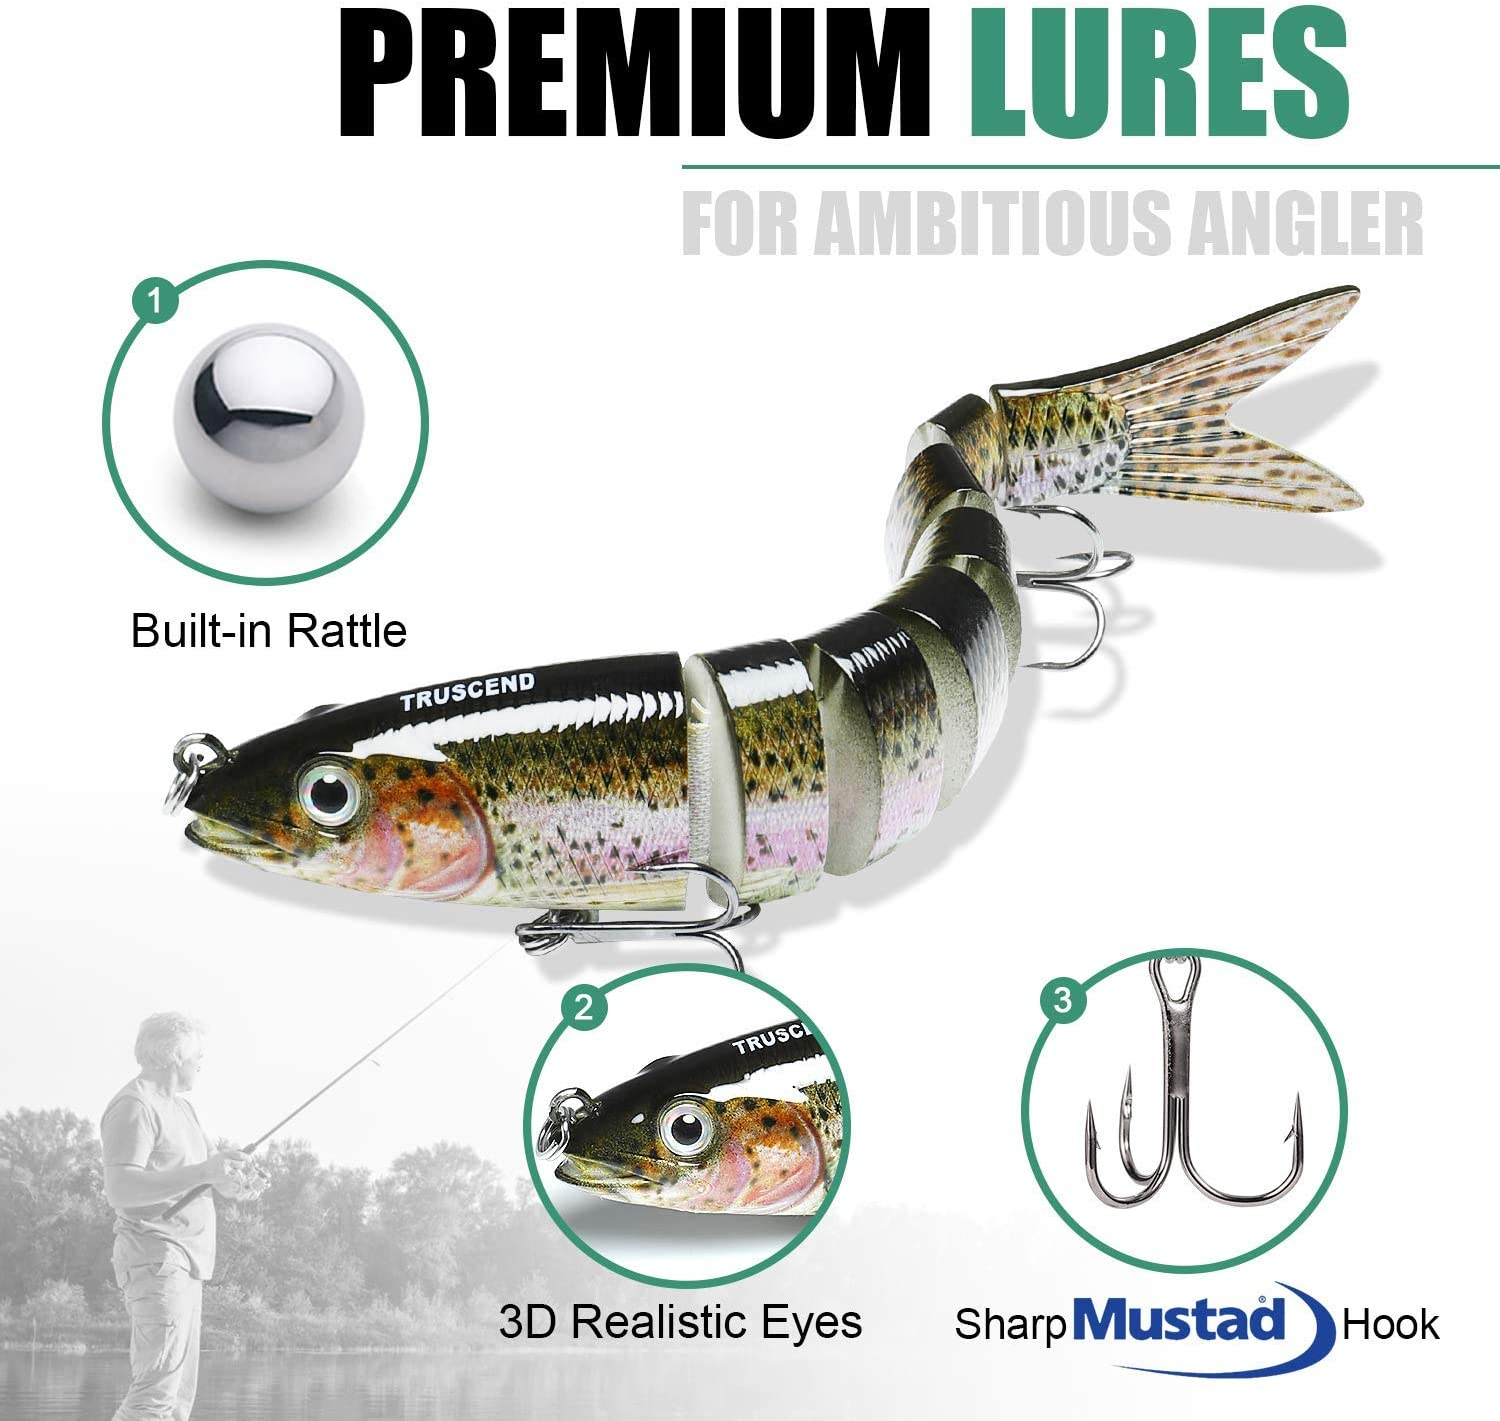 TRUSCEND Fishing Lures for Bass Trout Multi Jointed Swimbaits 5.4 Slow Sinking /& 2 Topwater Swimming Lures Bass Freshwater Saltwater Bass Fishing Lures Kit Lifelike